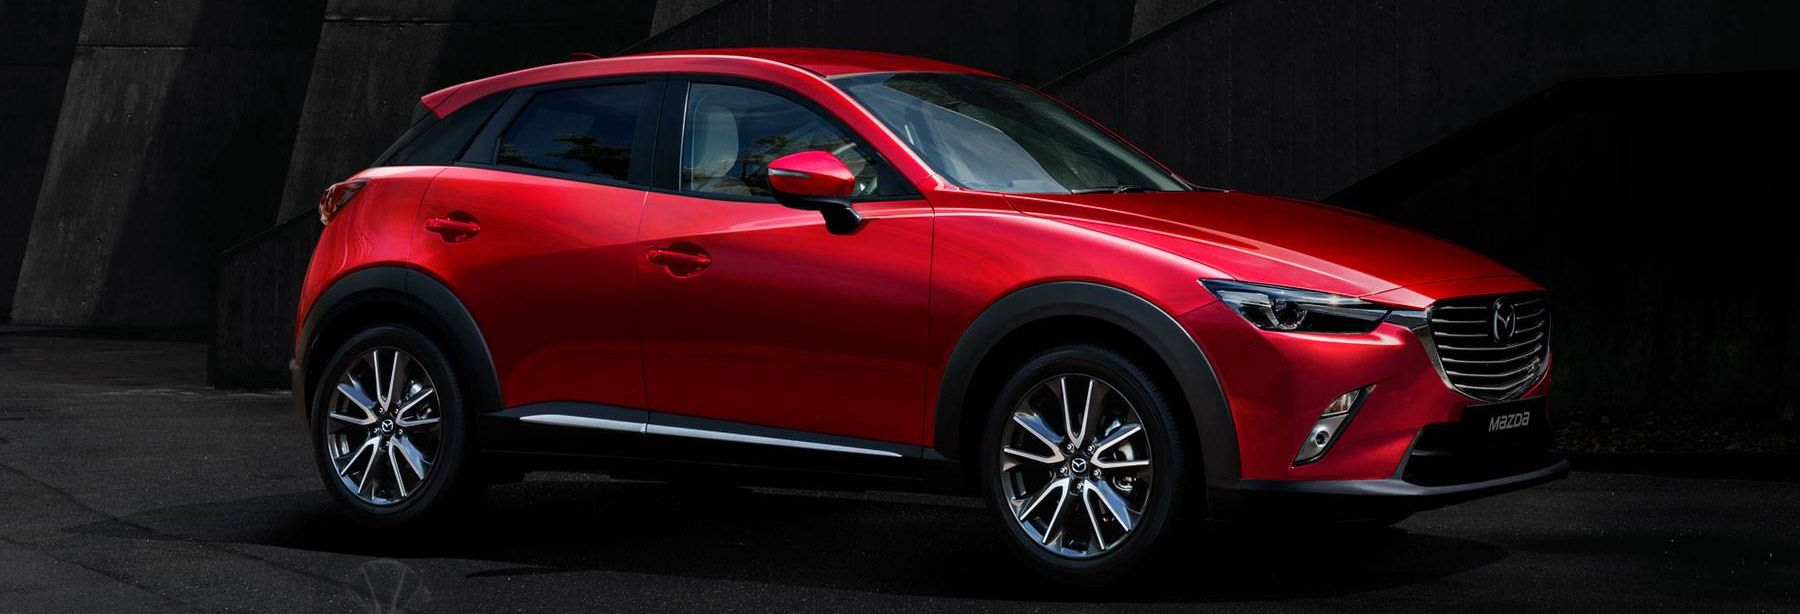 2018 Mazda CX-3 Leasing near Folsom, CA